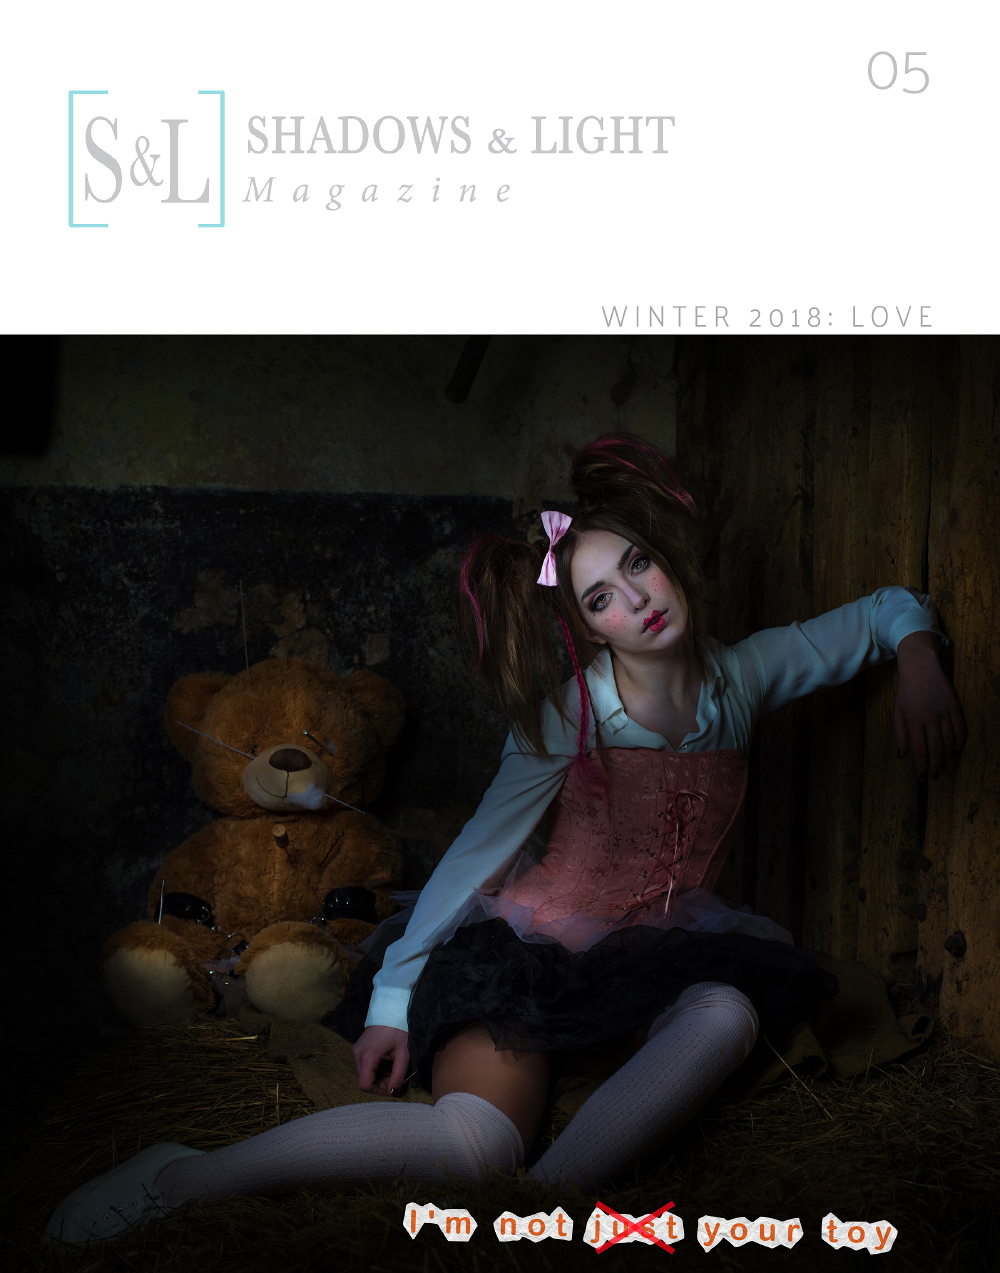 Shadows and Light Magazine - Issue 05